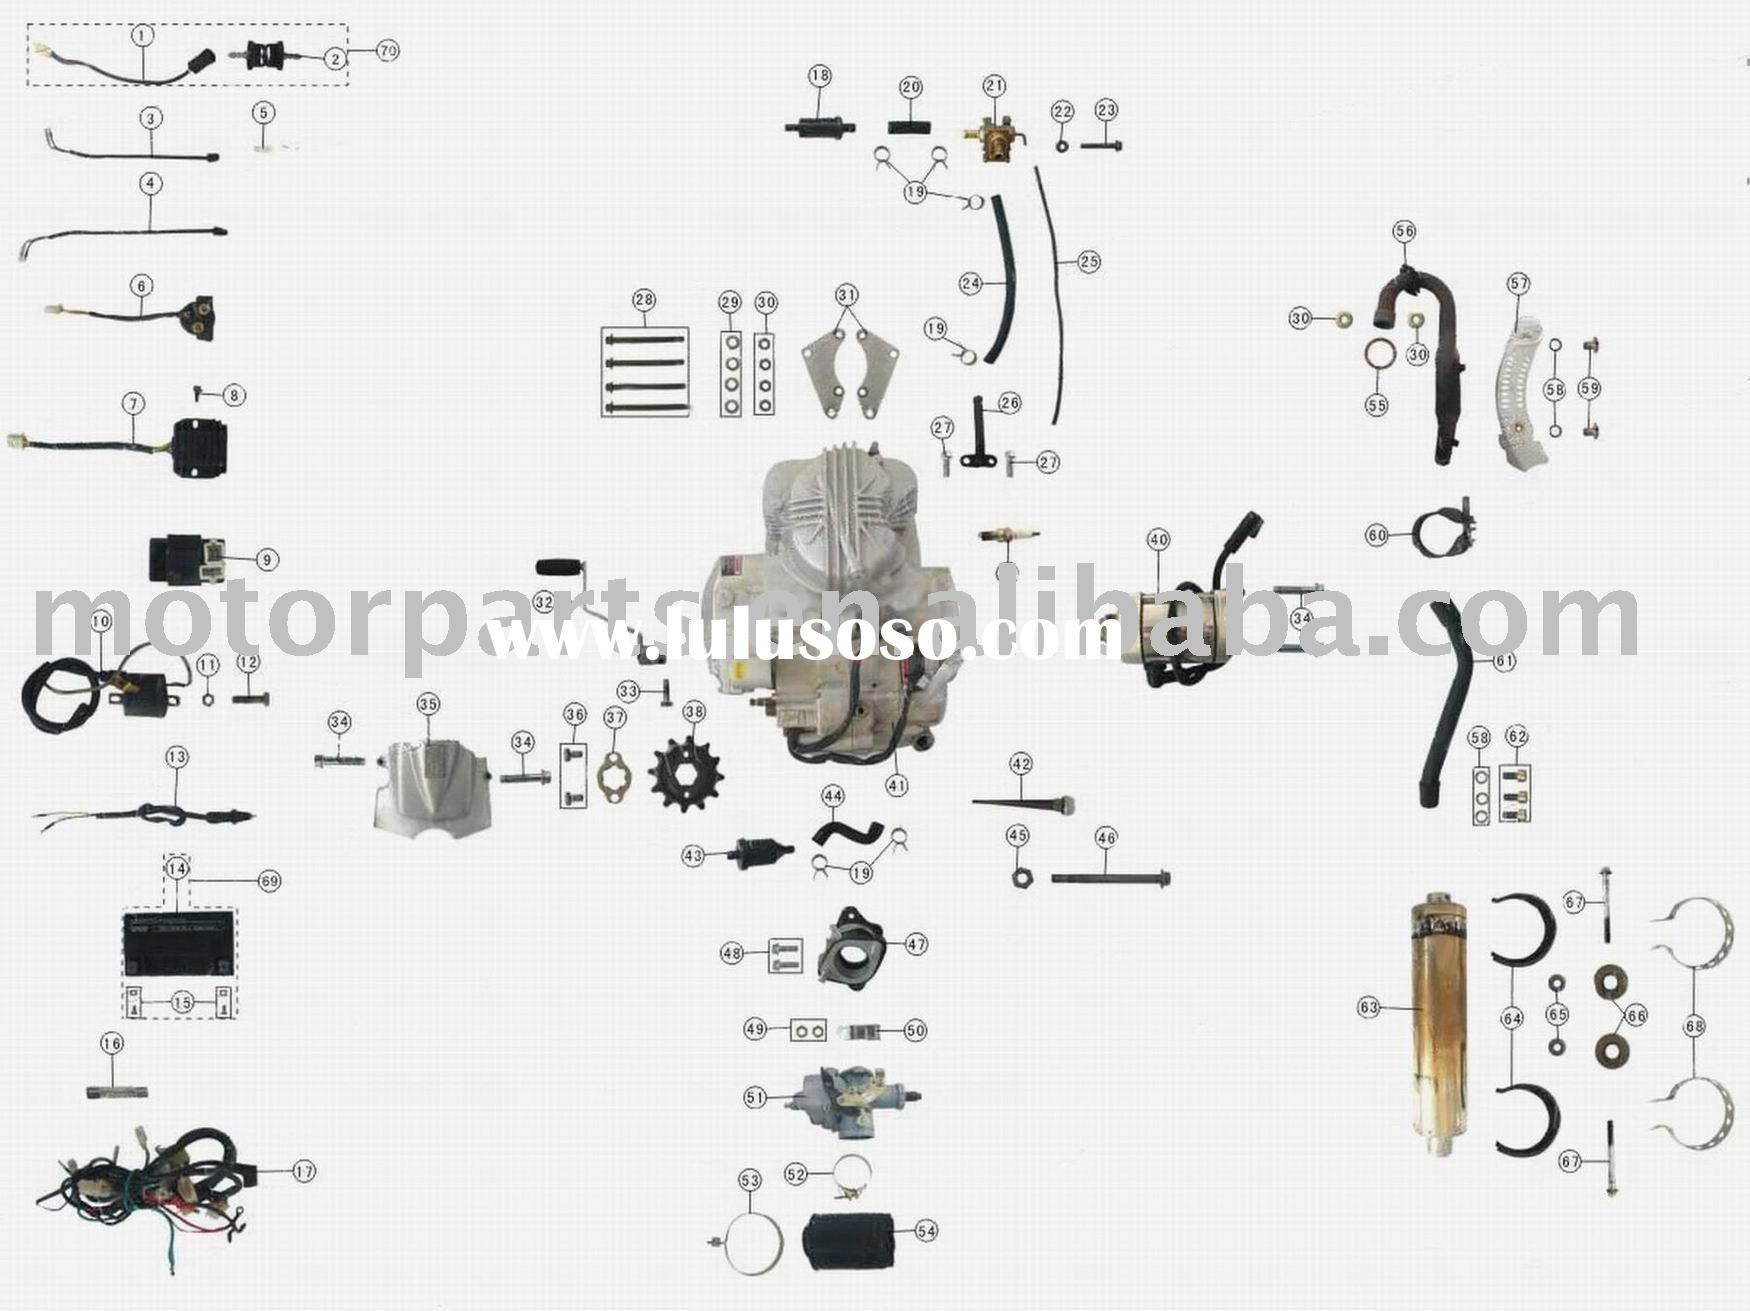 sunl 90cc atv wiring diagram 50cc    atv       wiring       wiring       diagram    database  50cc    atv       wiring       wiring       diagram    database